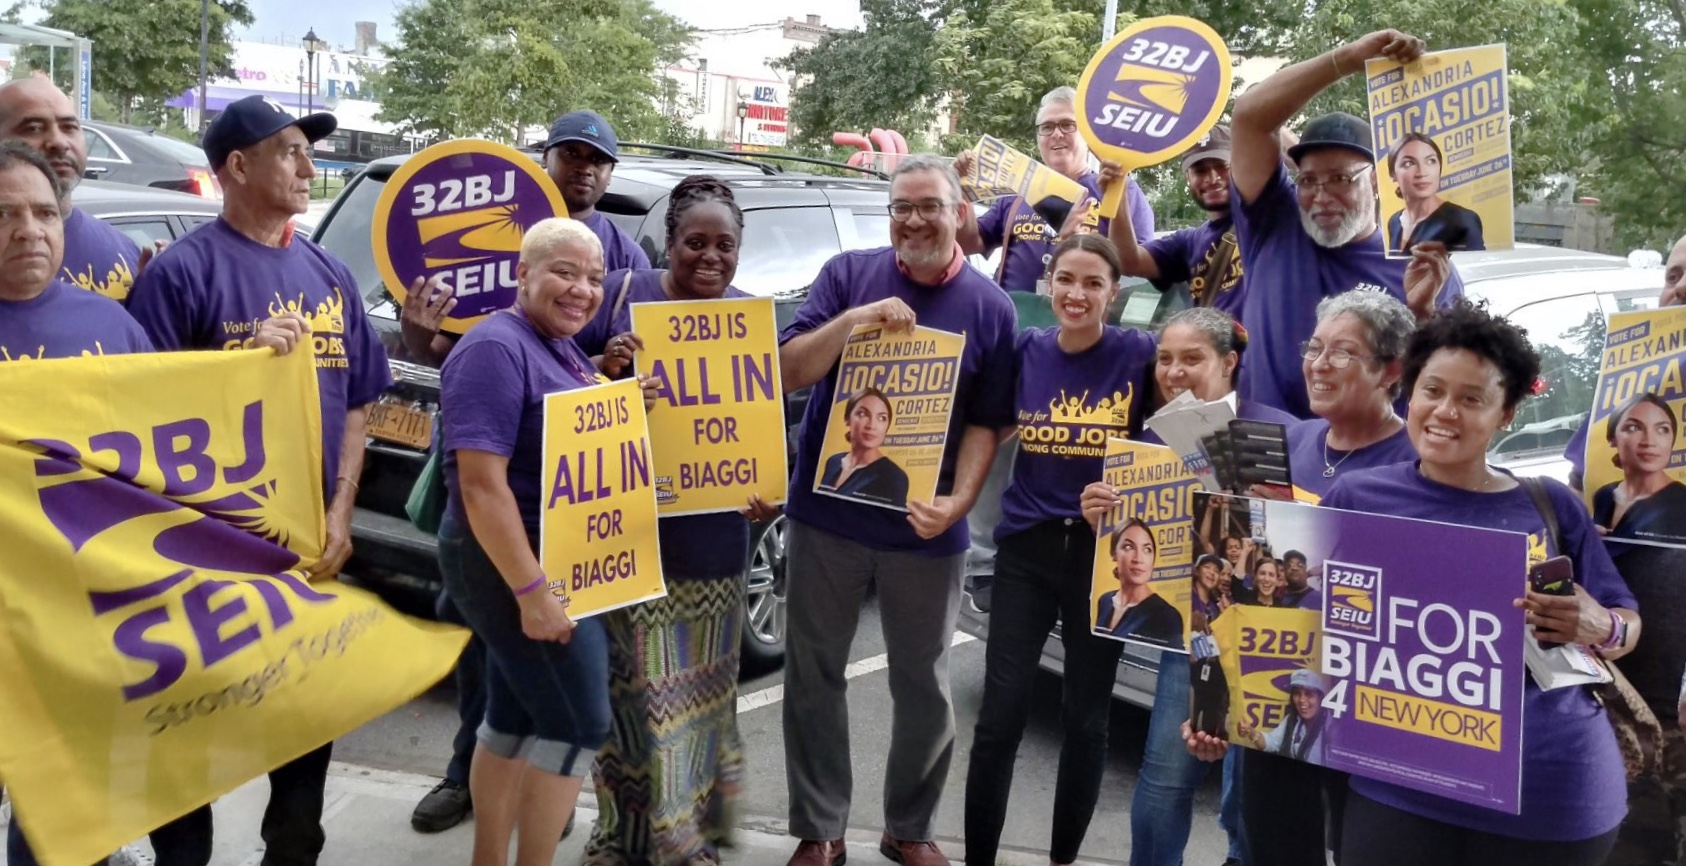 32BJ for Biaggi